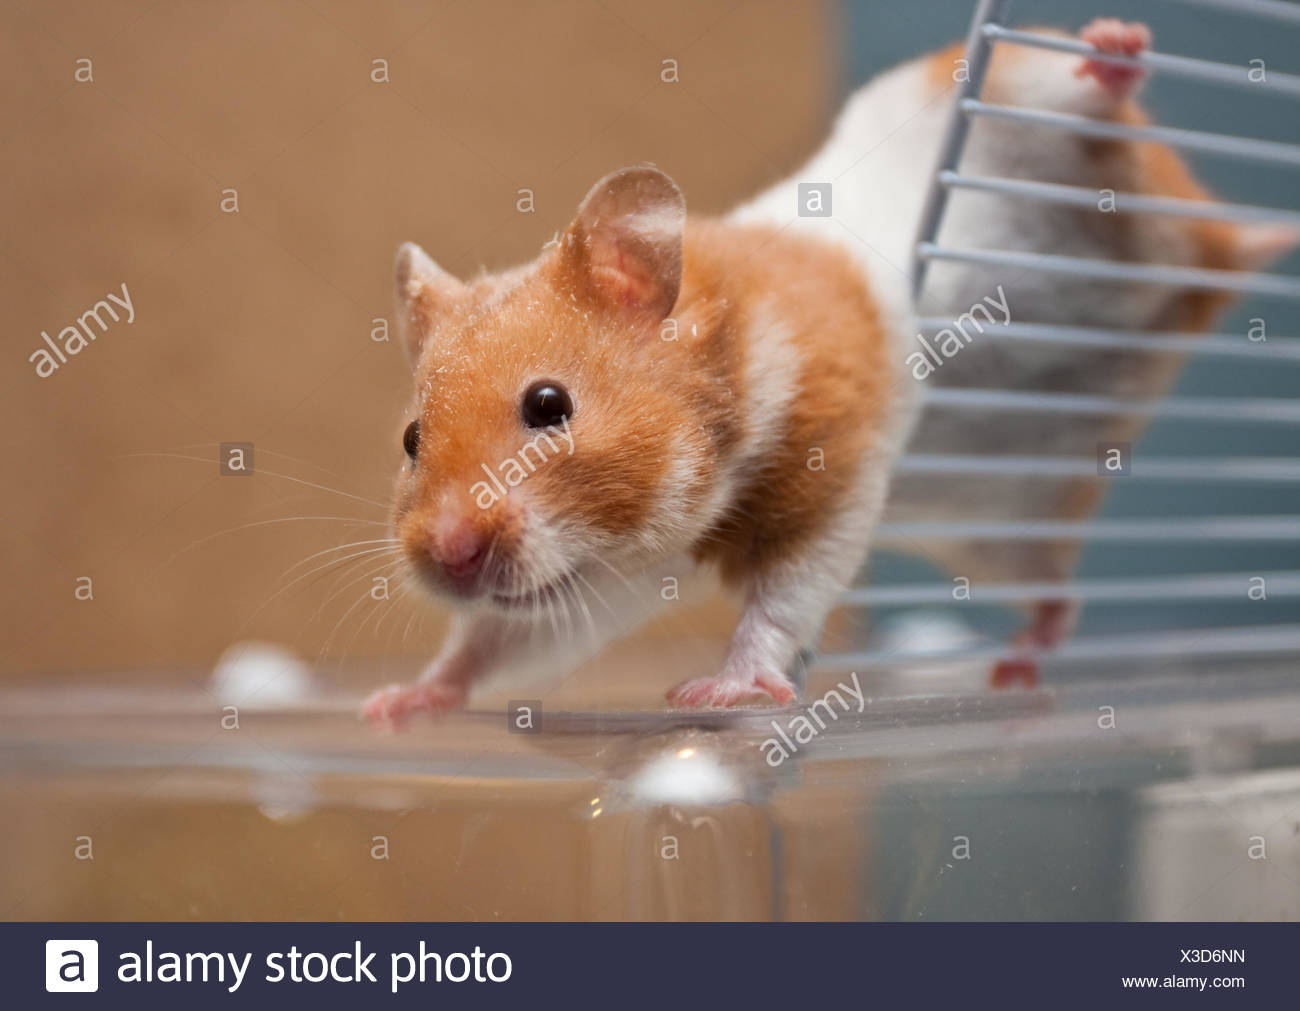 risk animal pet rodent fur freedom liberty spring bouncing bounces hop skipping frisks jumping jump brave tail mouse hamster - Stock Image